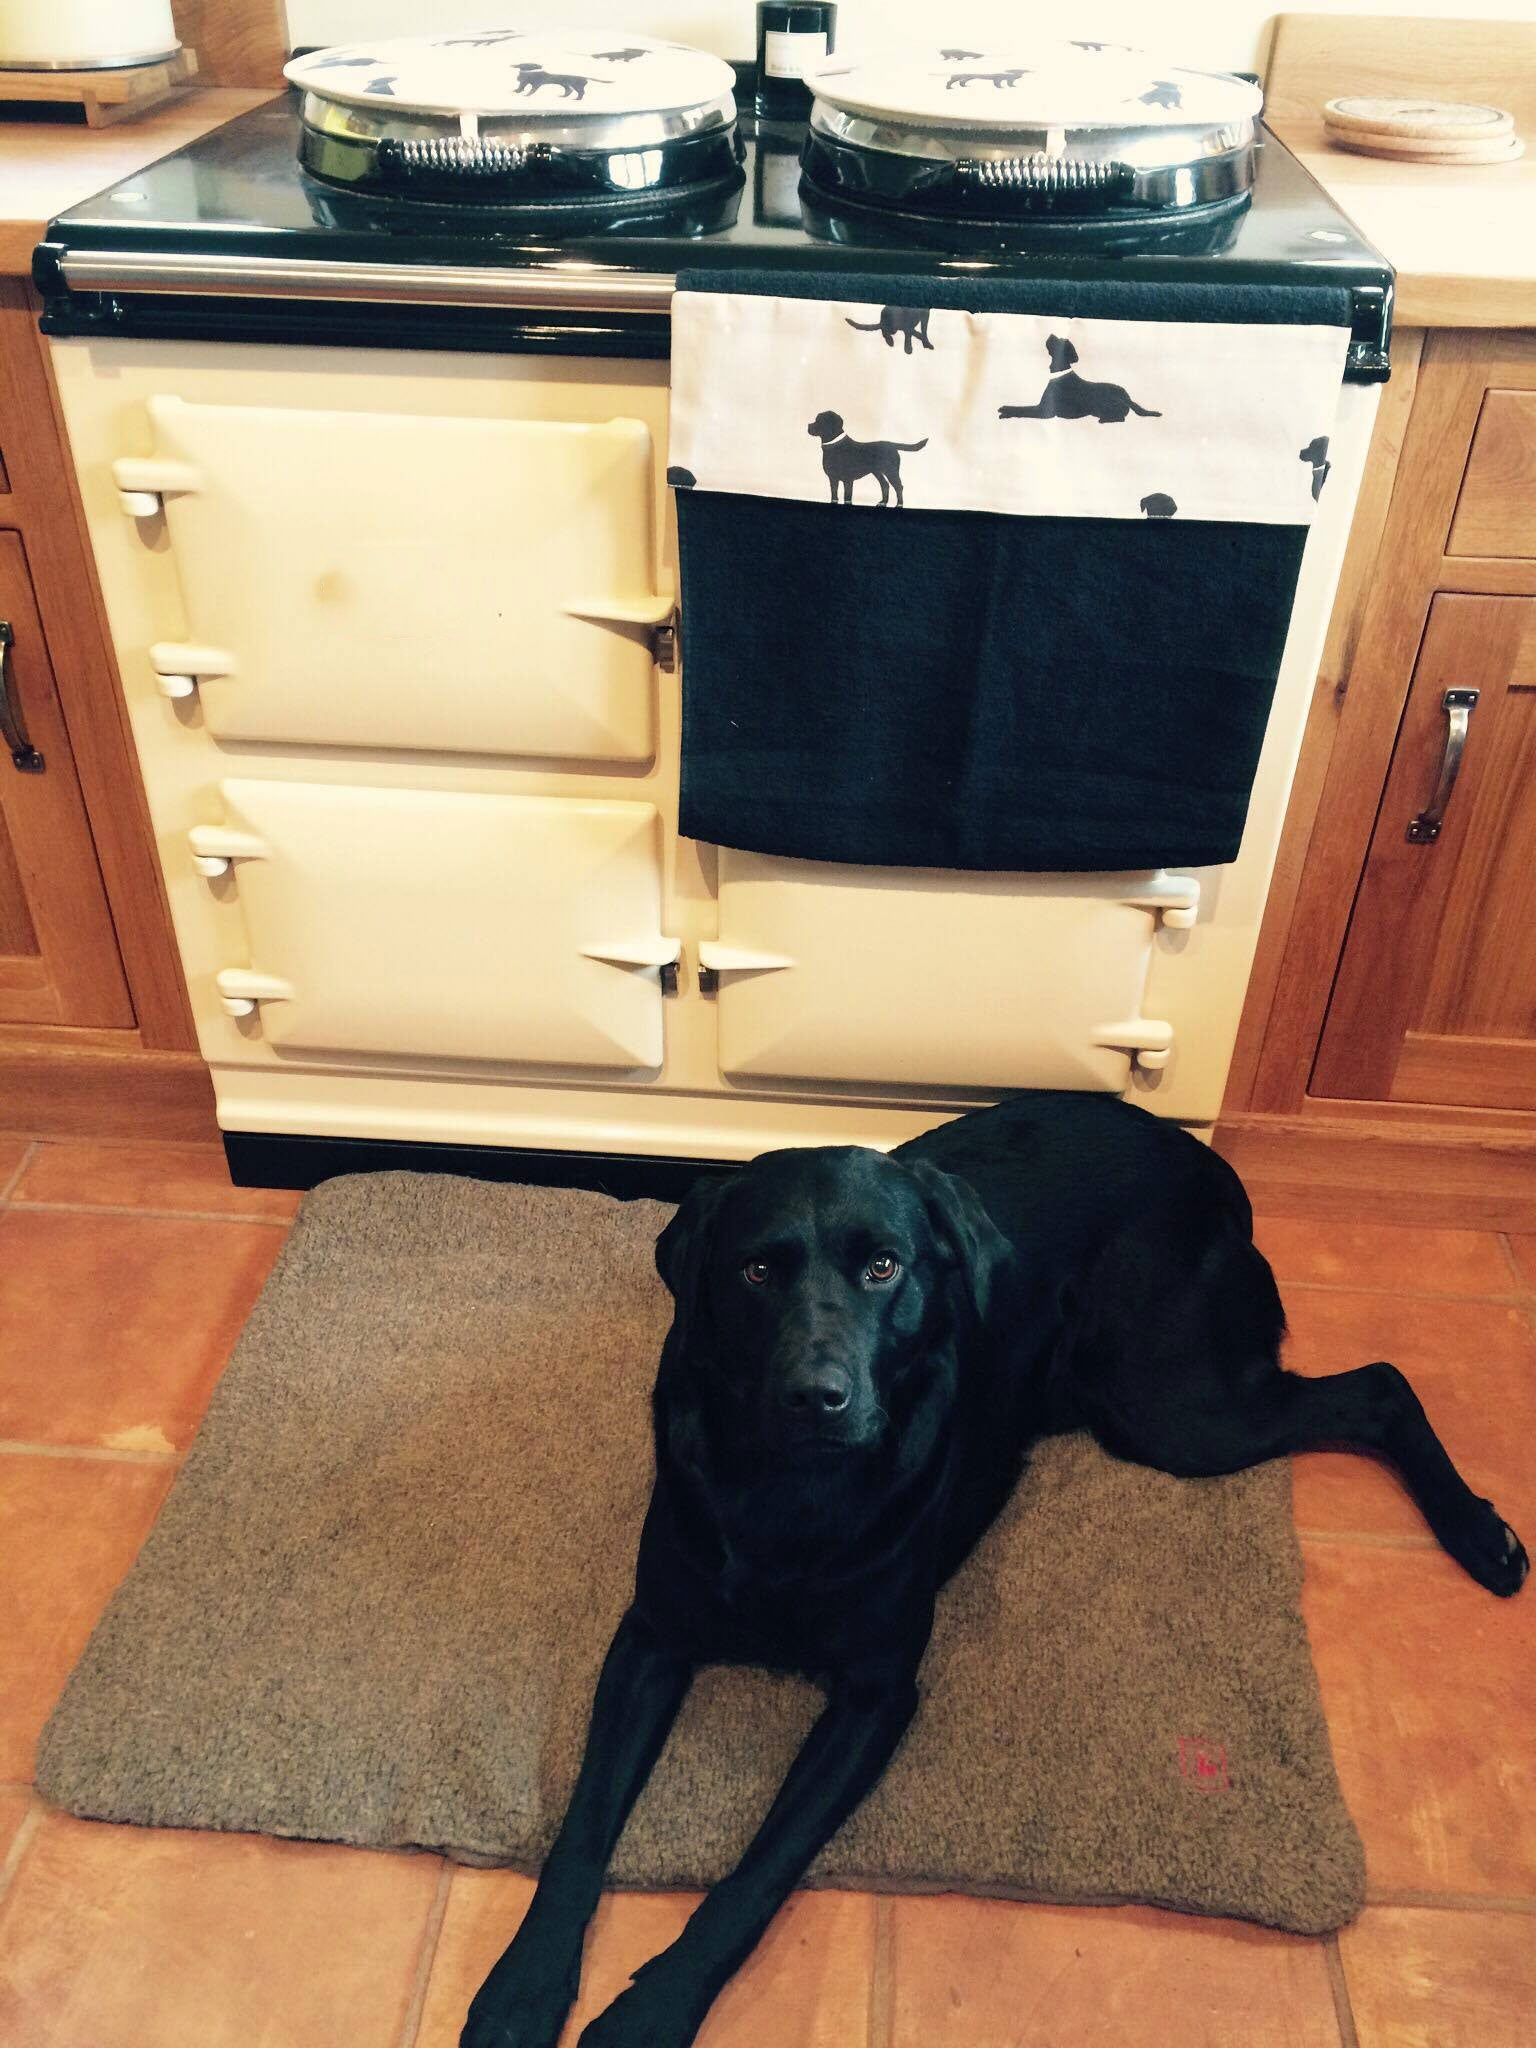 Black labrador with cream Aga range cooker